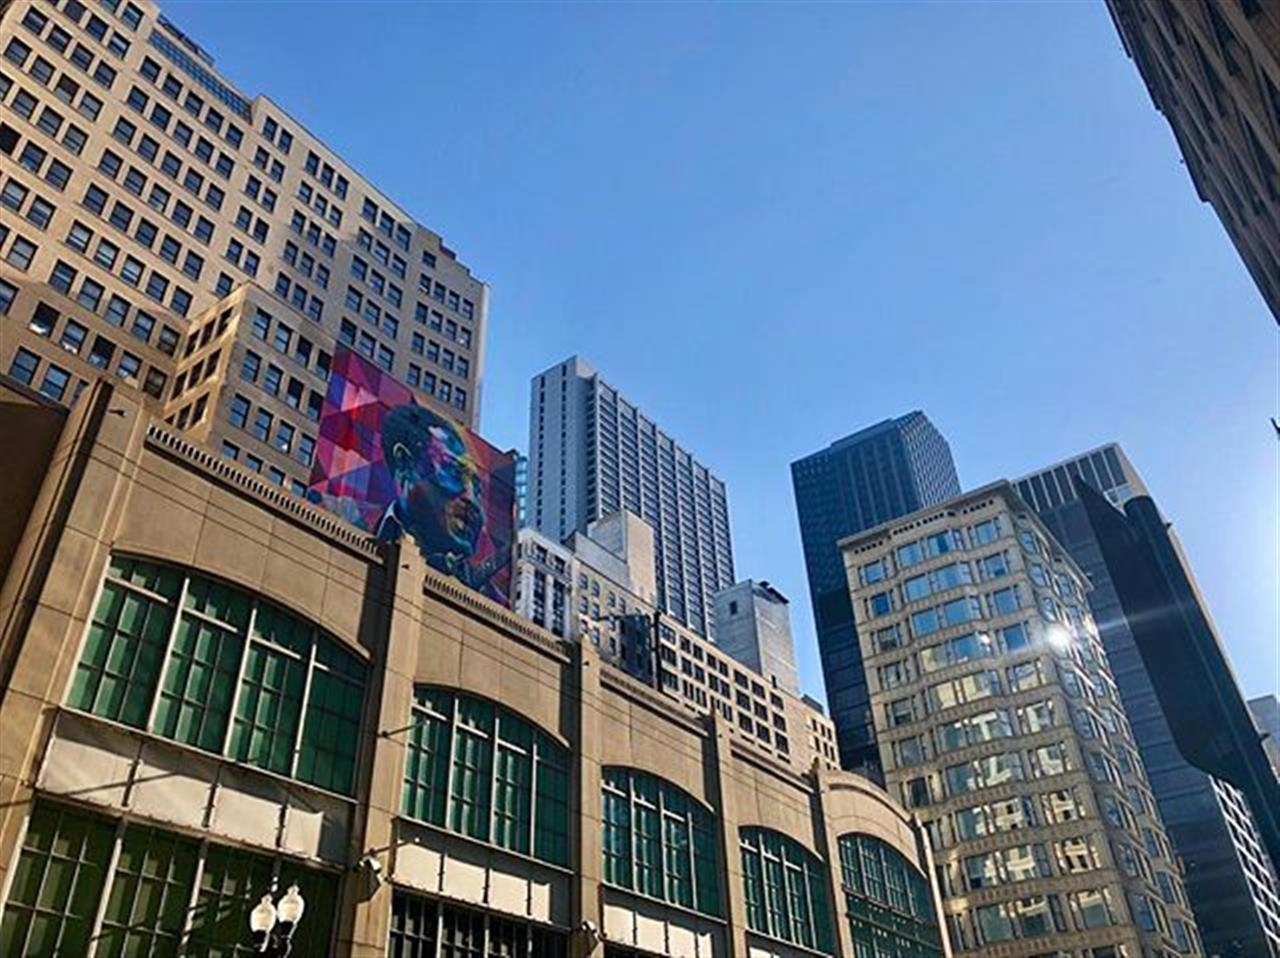 BB King hiding on #StateStreet .. .. #chicago #chicagosights #bbking #blues #mural #chicagorealestate #statestreetrealty #illinois #illinoisrealestate #bairdwarner #walkhome #walk #leadingrelocal #skyline #livelocal #chi #loop #wednesday